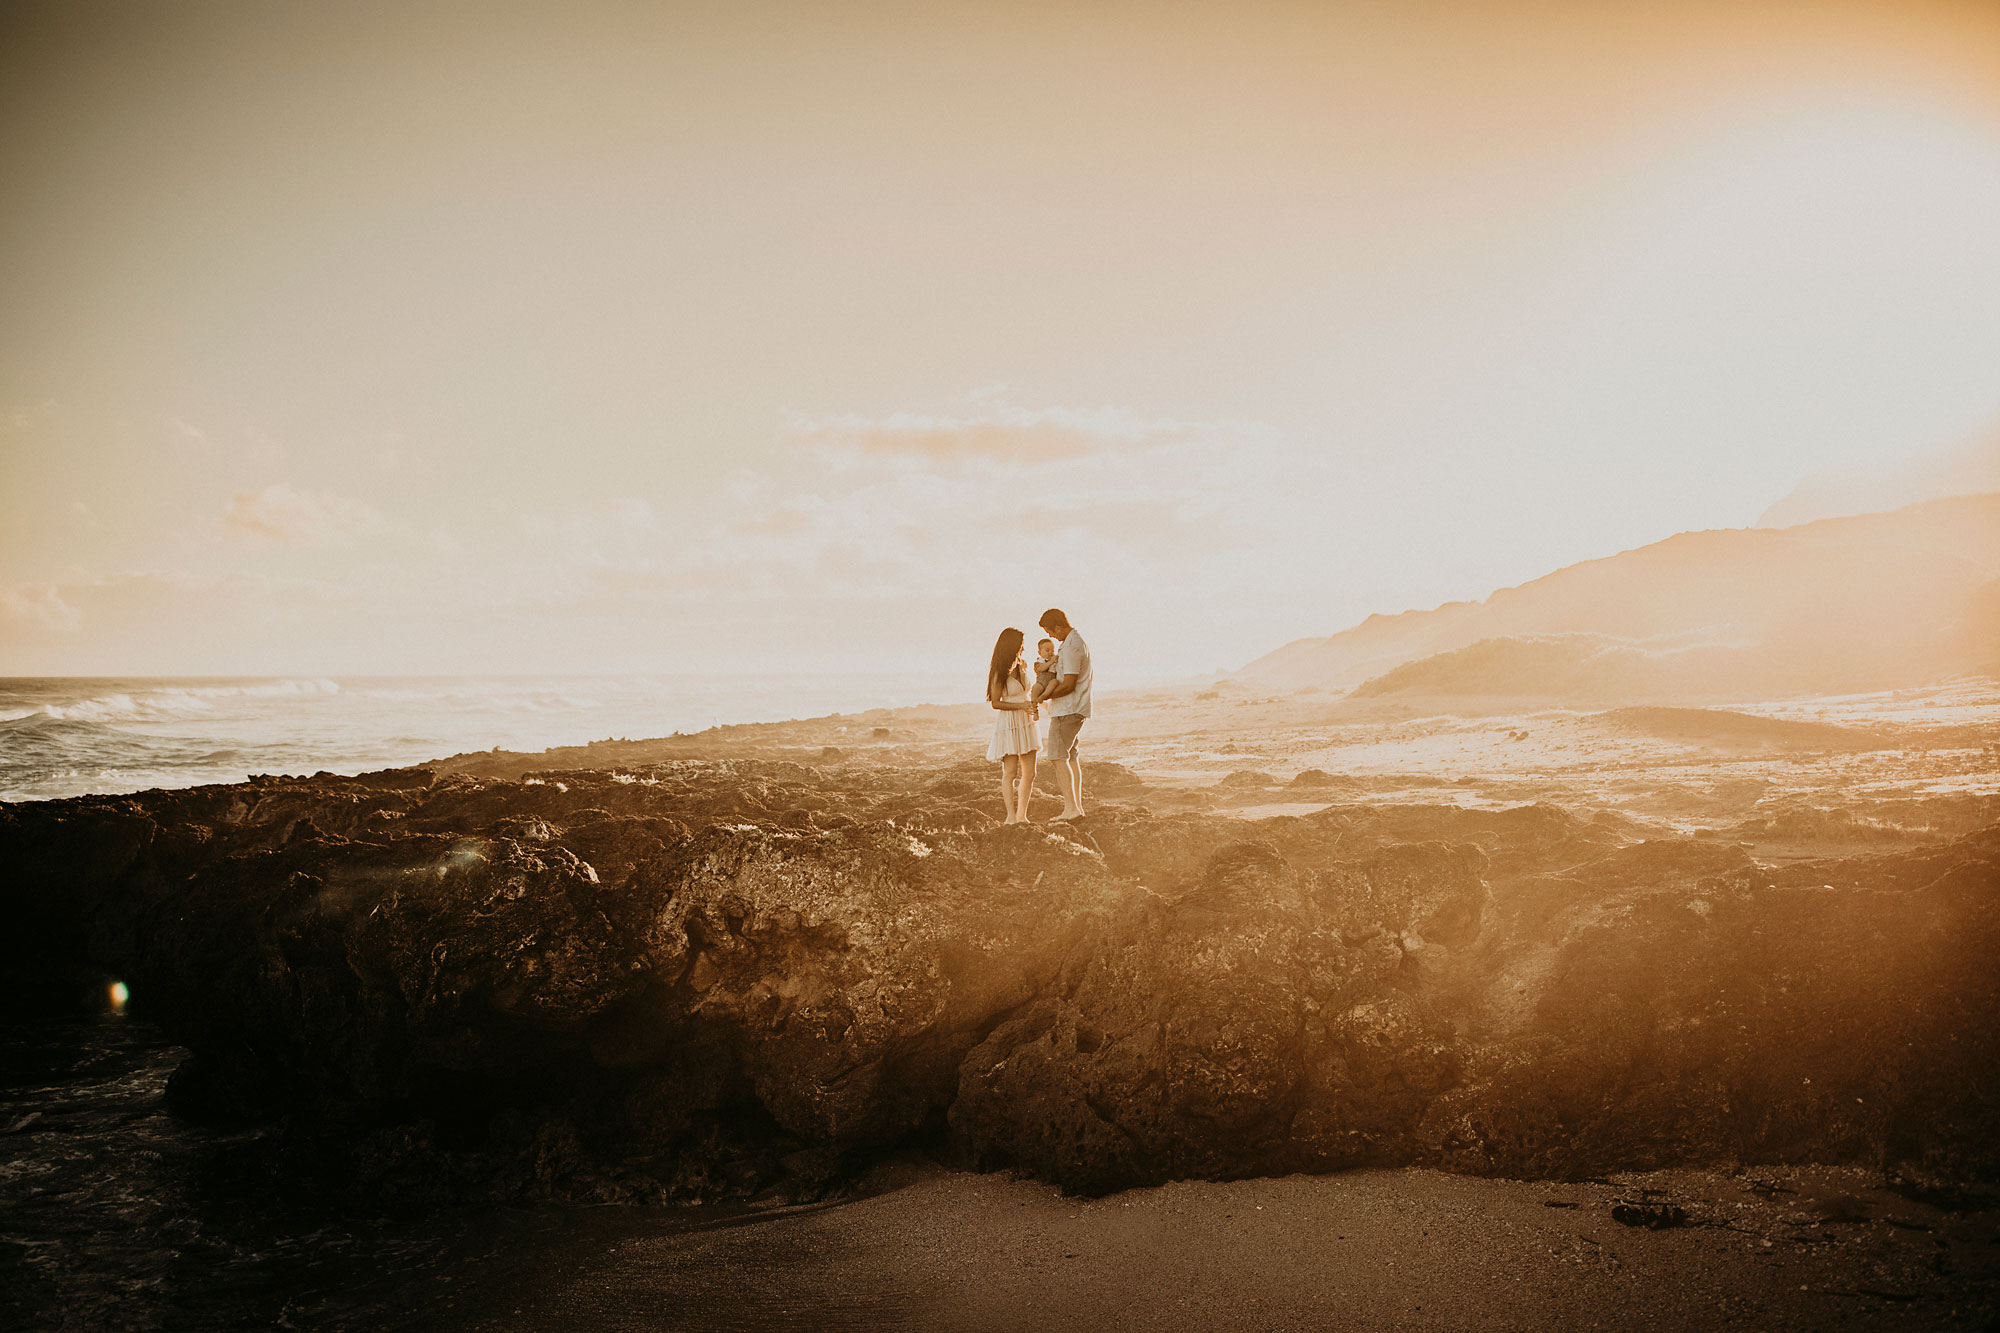 Kaena-Point-Sunrise-Family-Photographer-Hawaii-13.jpg